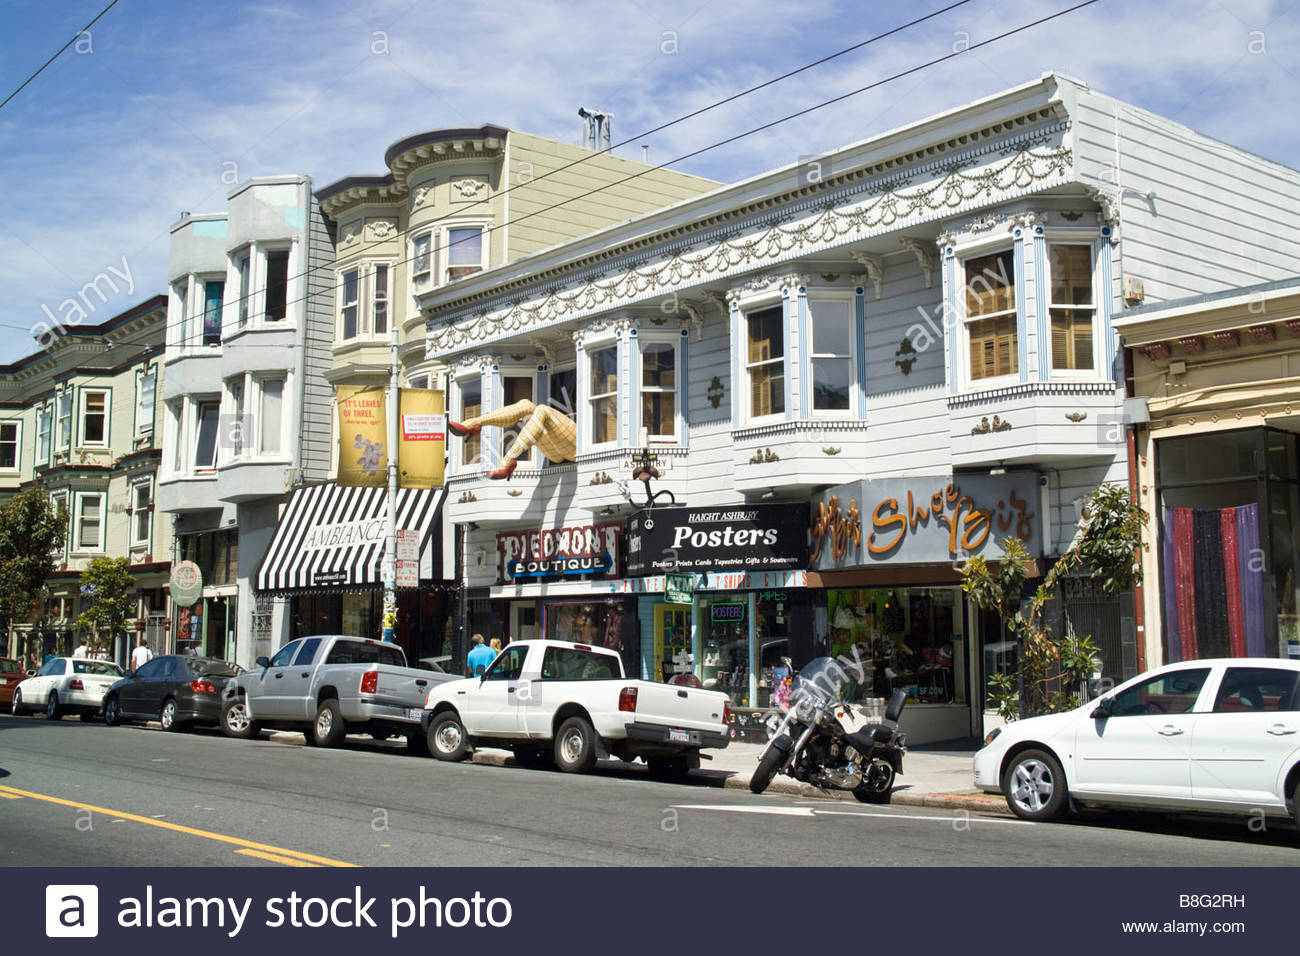 shops-in-haight-ashbury-B8G2RH.jpg